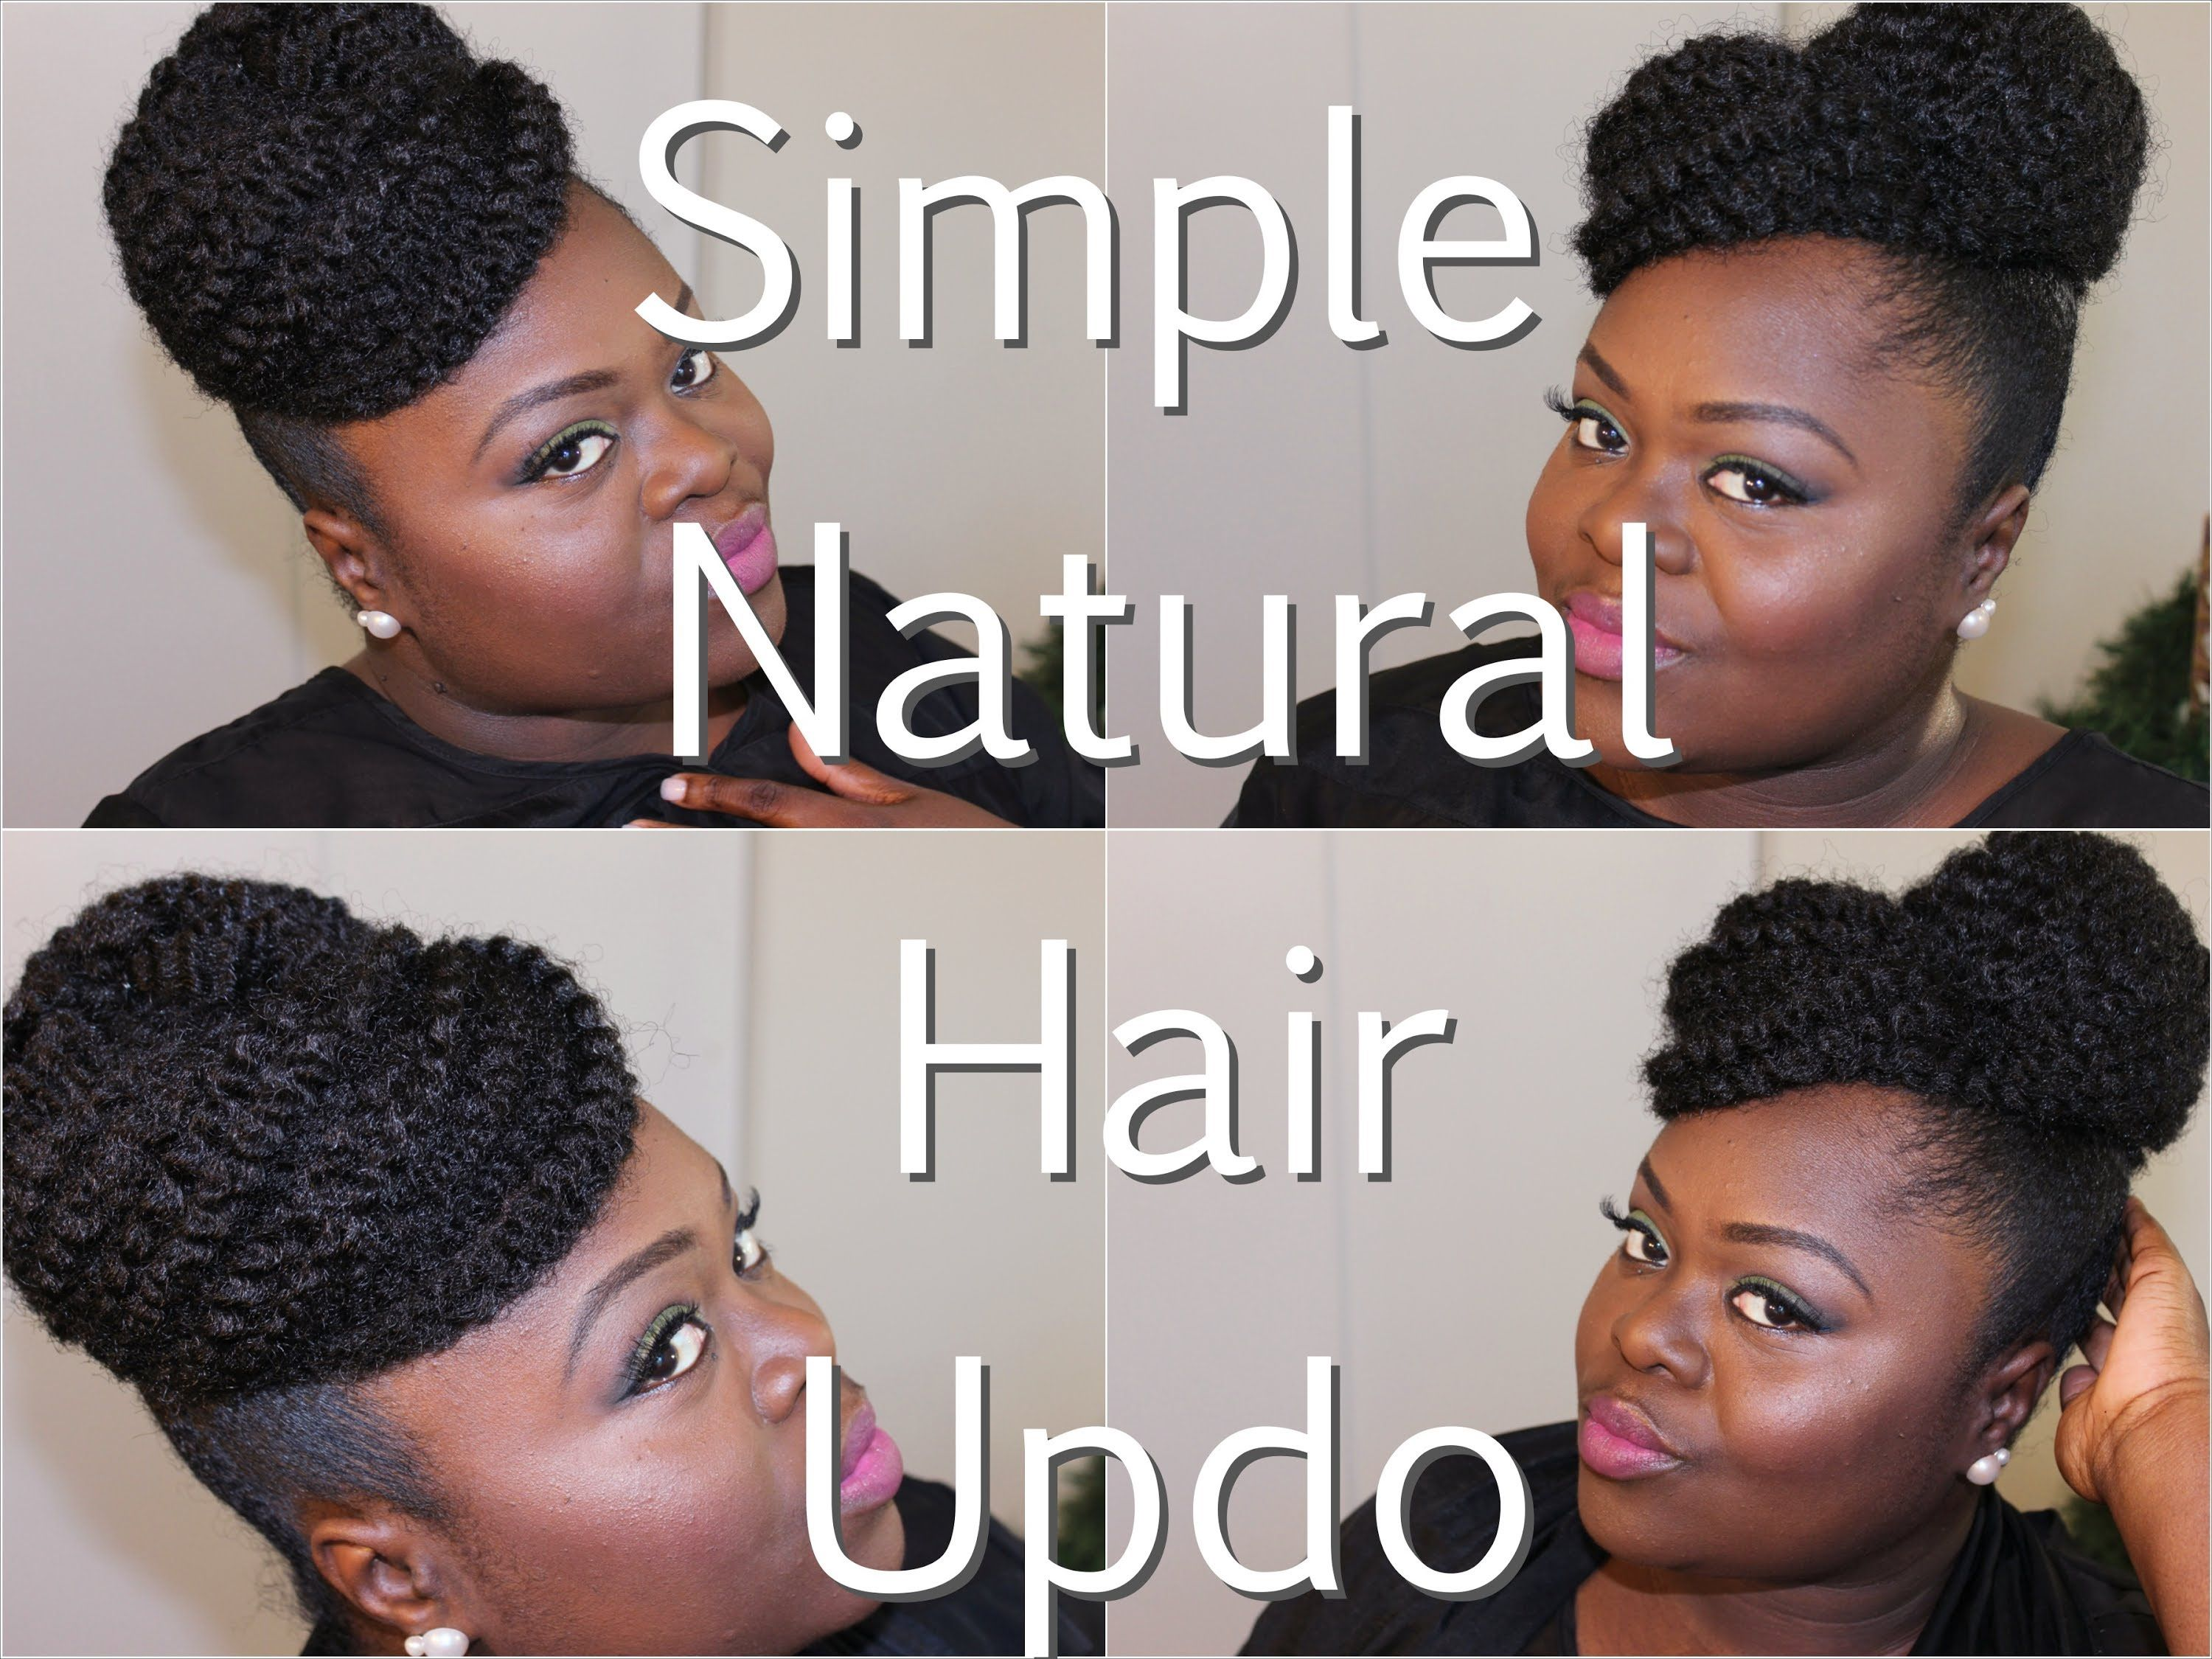 Easy Simple Natural Hair Updo With Marley Hair Extension From Youtube Natural Hair Updo Natural Hair Styles Natural Updo